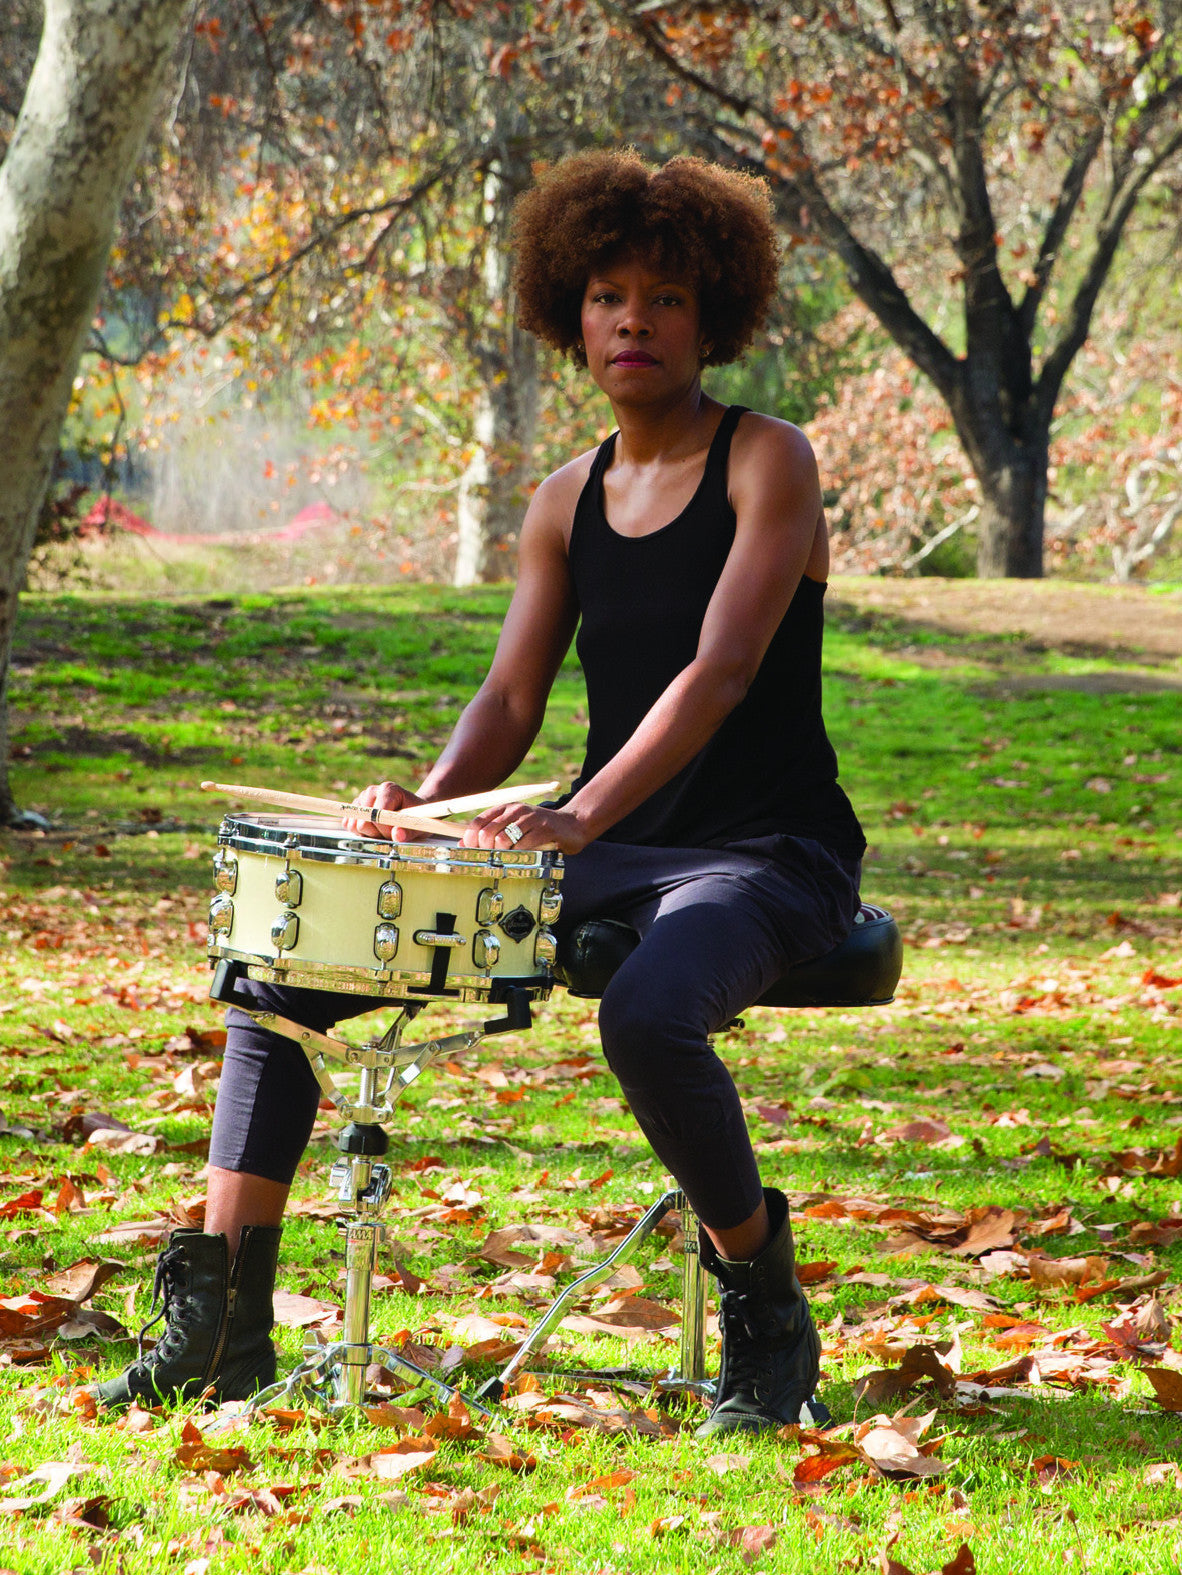 Tom Tom Magazine Issue 17: The Body Issue - Drummers | Music | Feminism: Shop Tom Tom